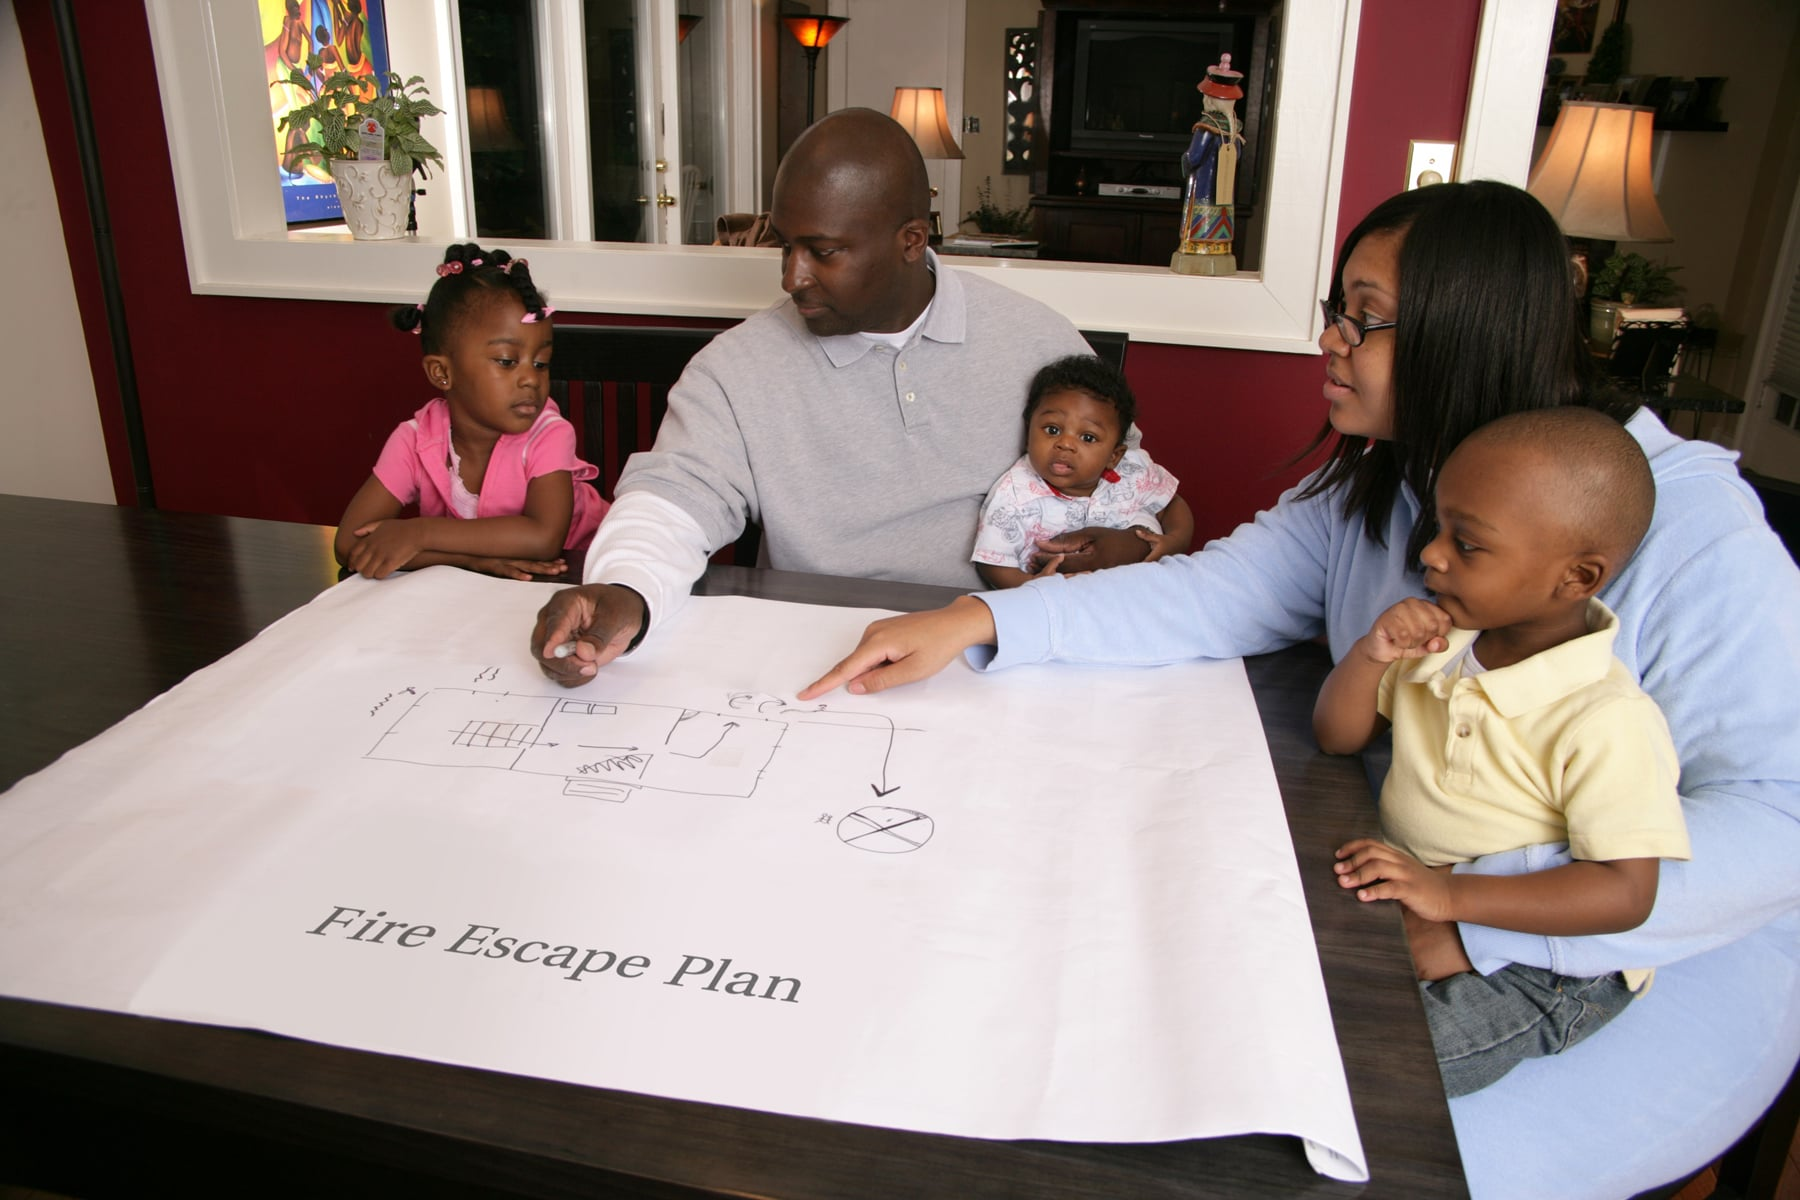 Family discussing an escape plan